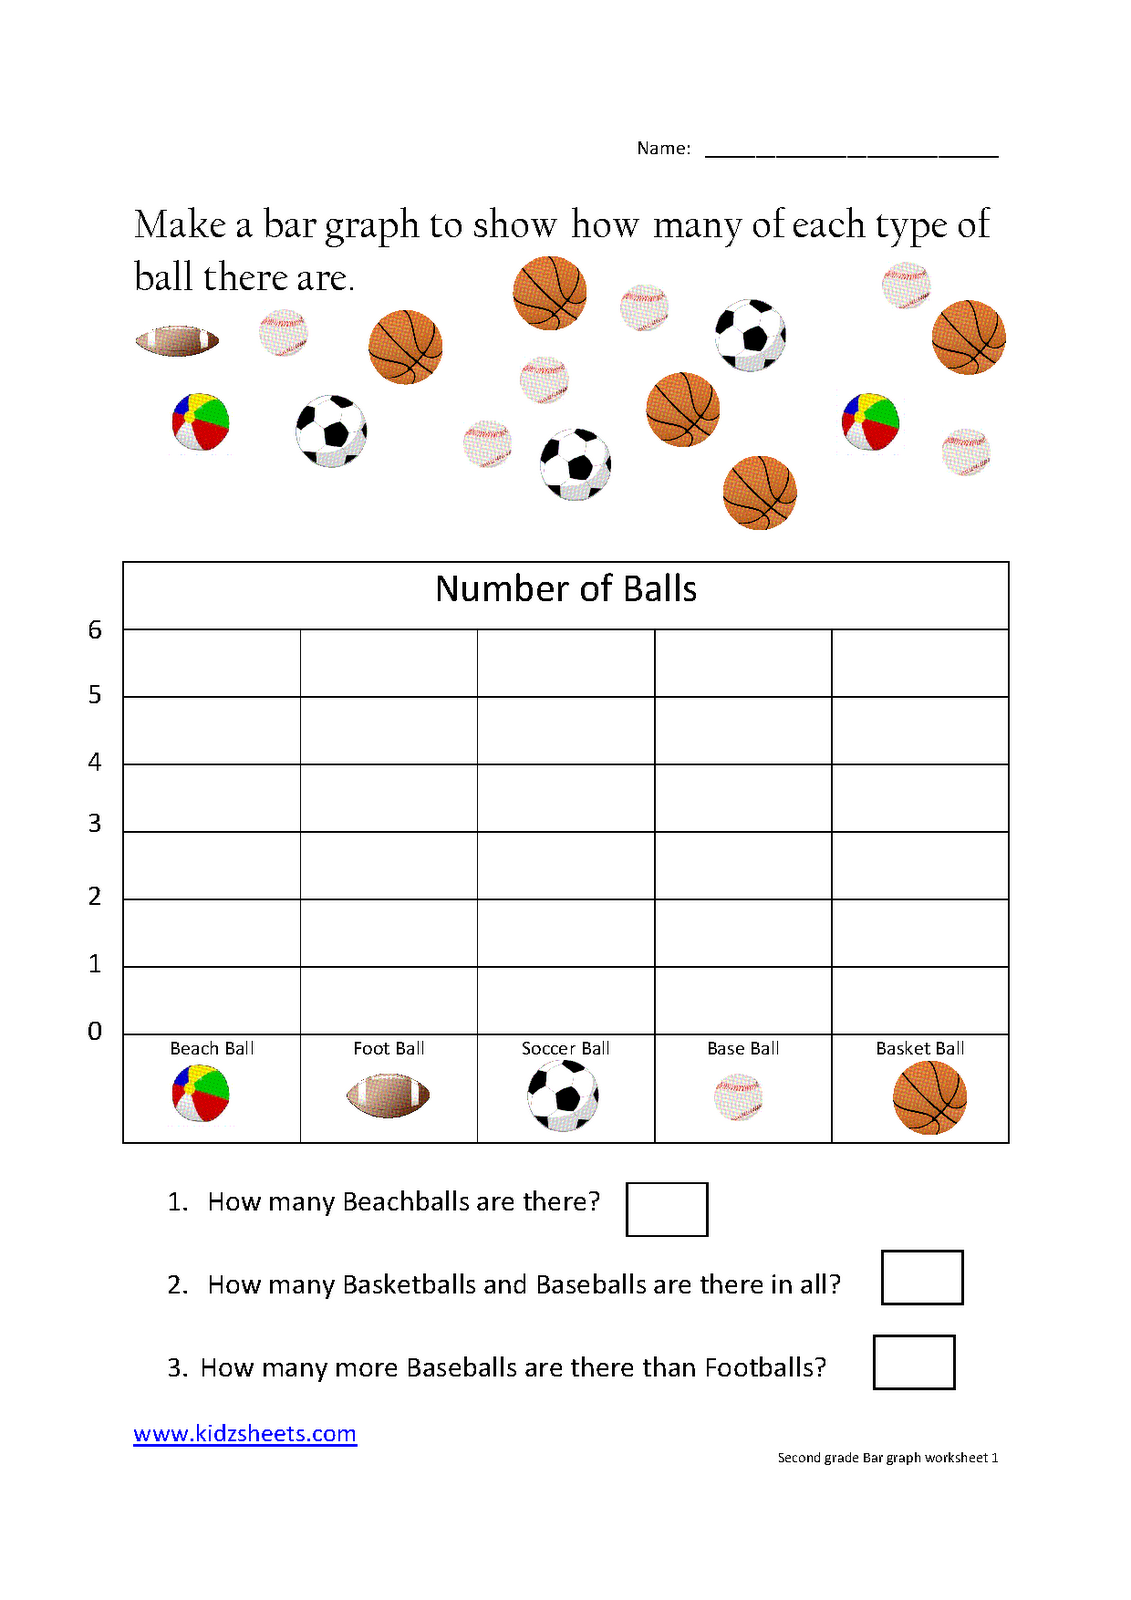 Worksheet Graph Worksheets For 2nd Grade kidz worksheets second grade bar graph worksheet1 graph